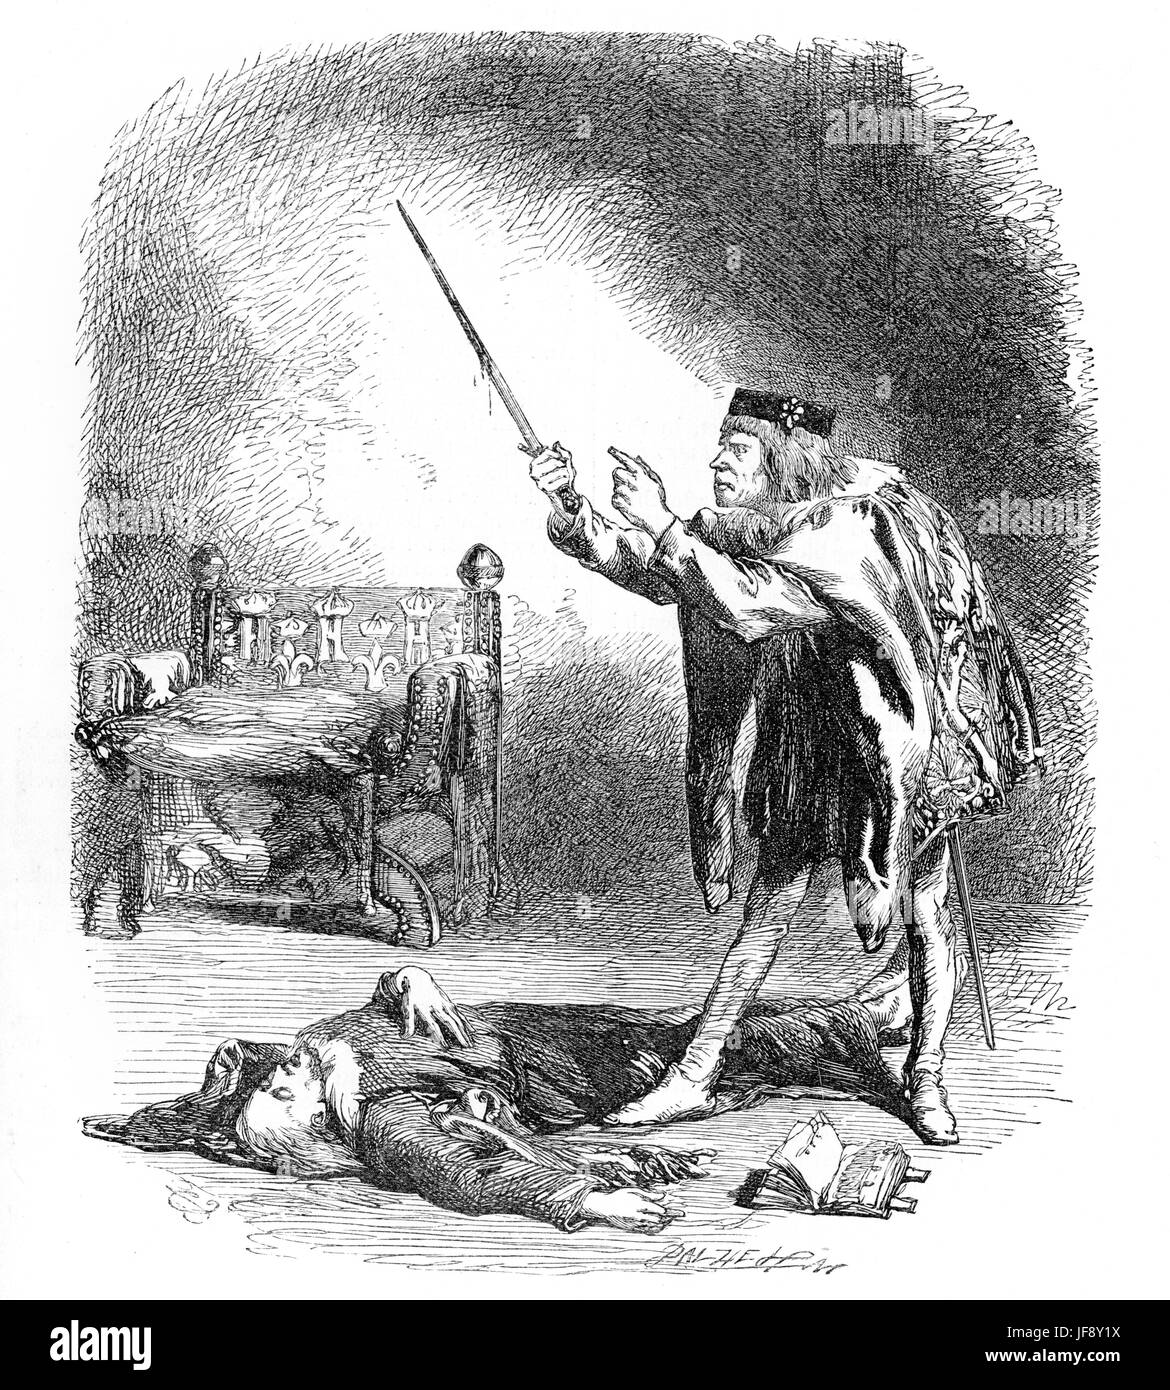 Henry VI part III, play by William Shakespeare (26 April 1564 – 23 April 1616). Act 5 scene 6, Gloucester murders - Stock Image